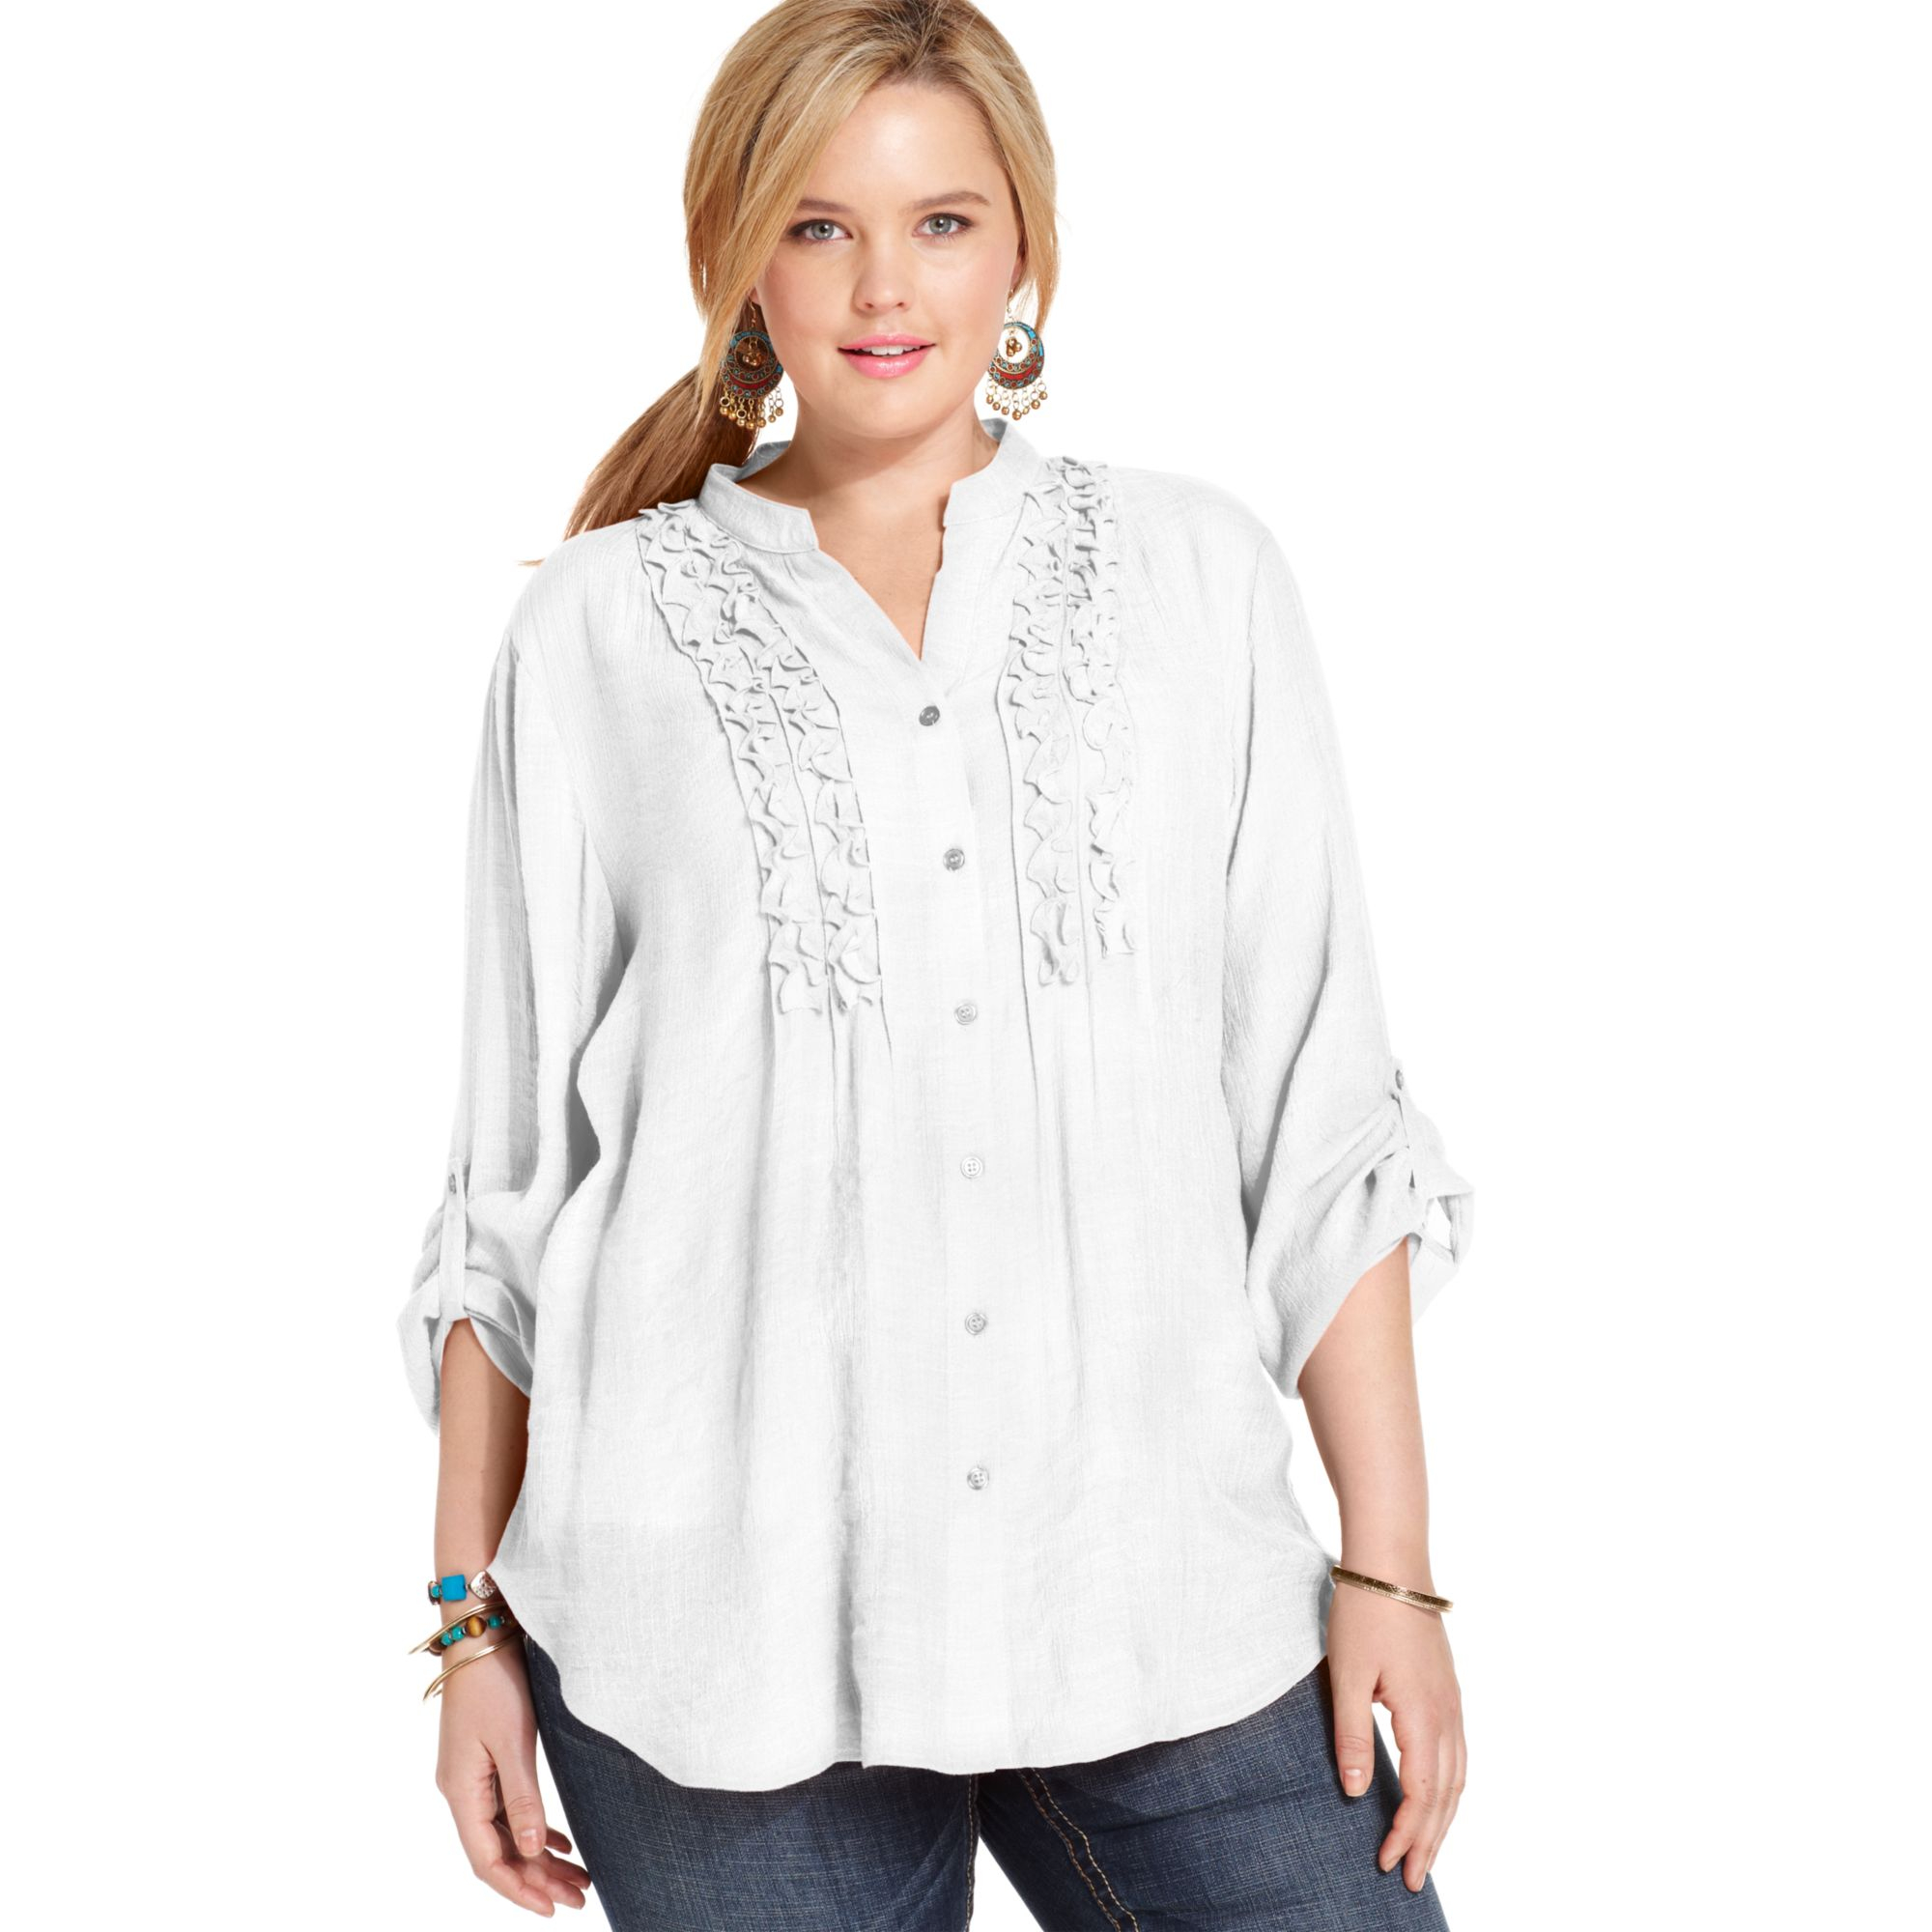 97678993437 Lyst - Spense Plus Size Threequartersleeve Ruffled Blouse in White